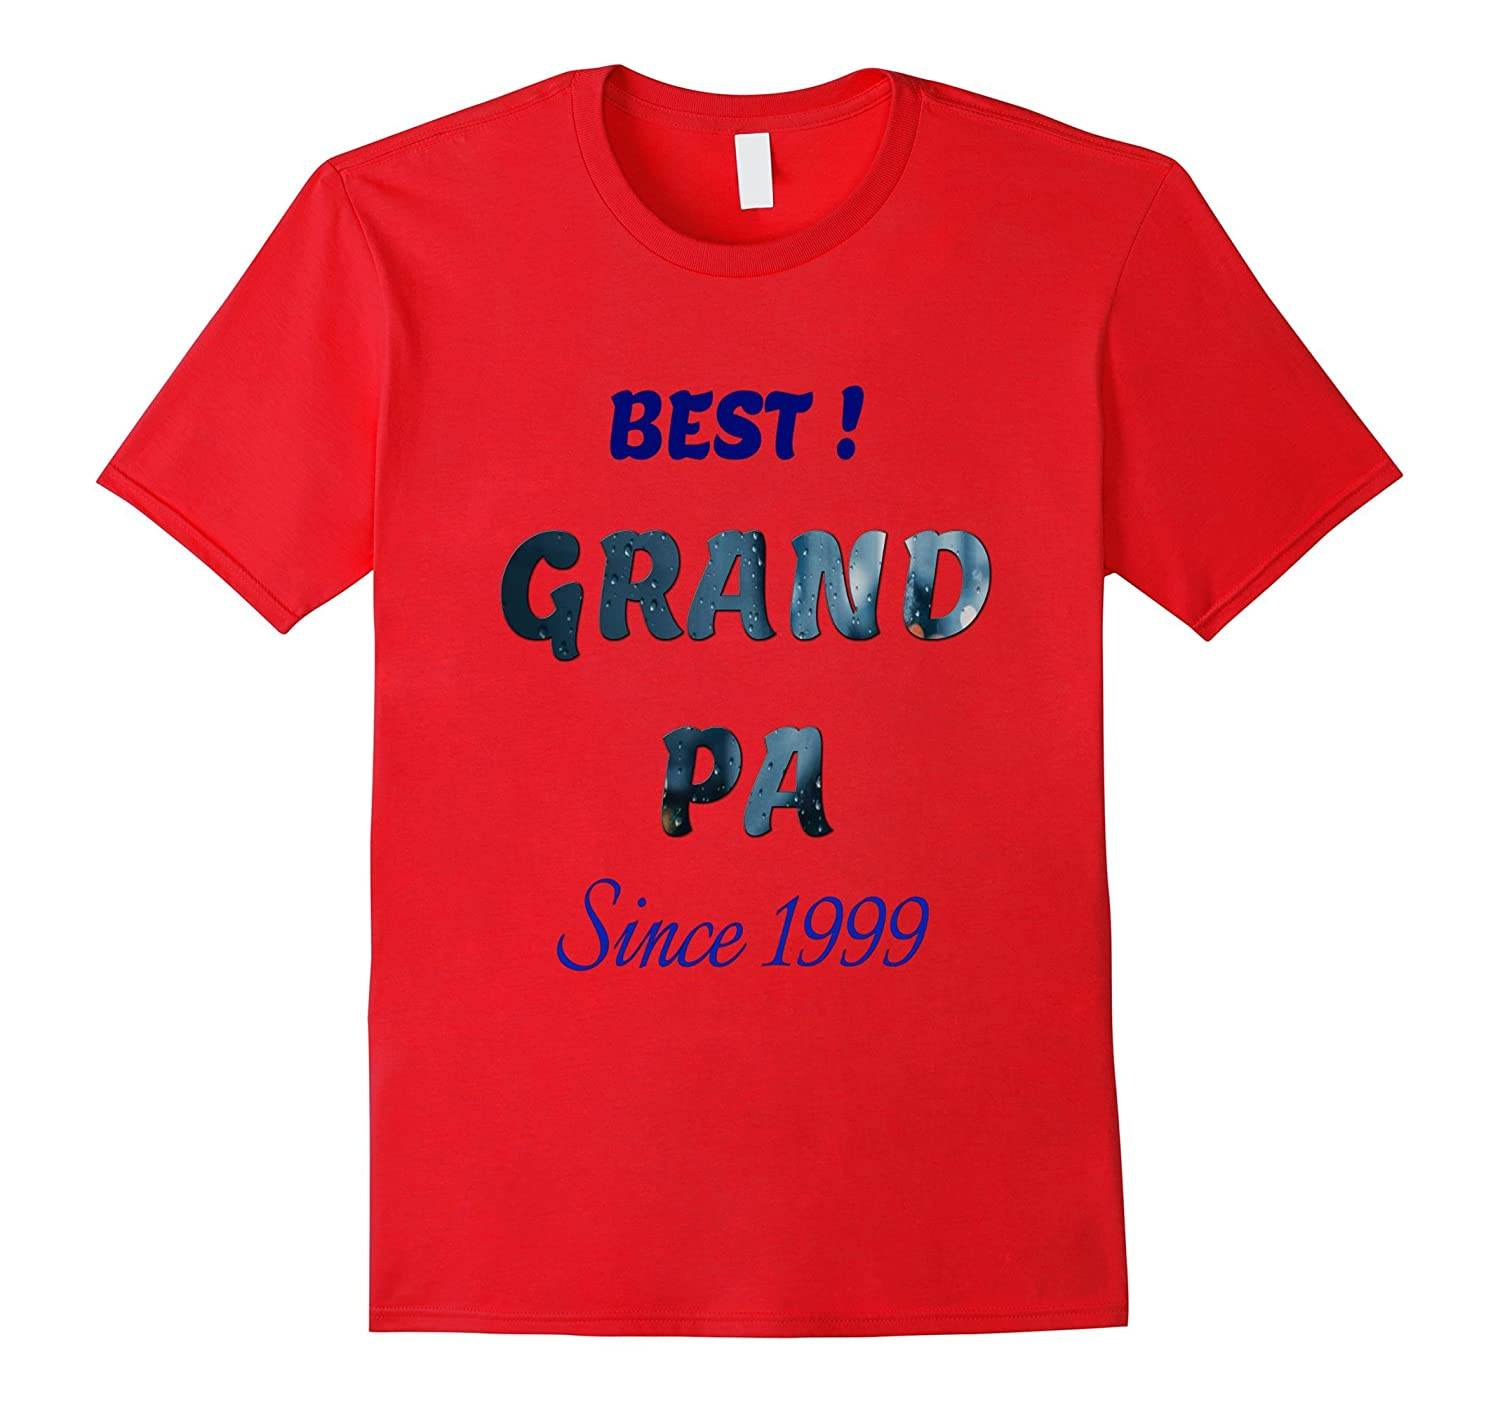 Best Grand Pa T-shirt Since 1999-TH